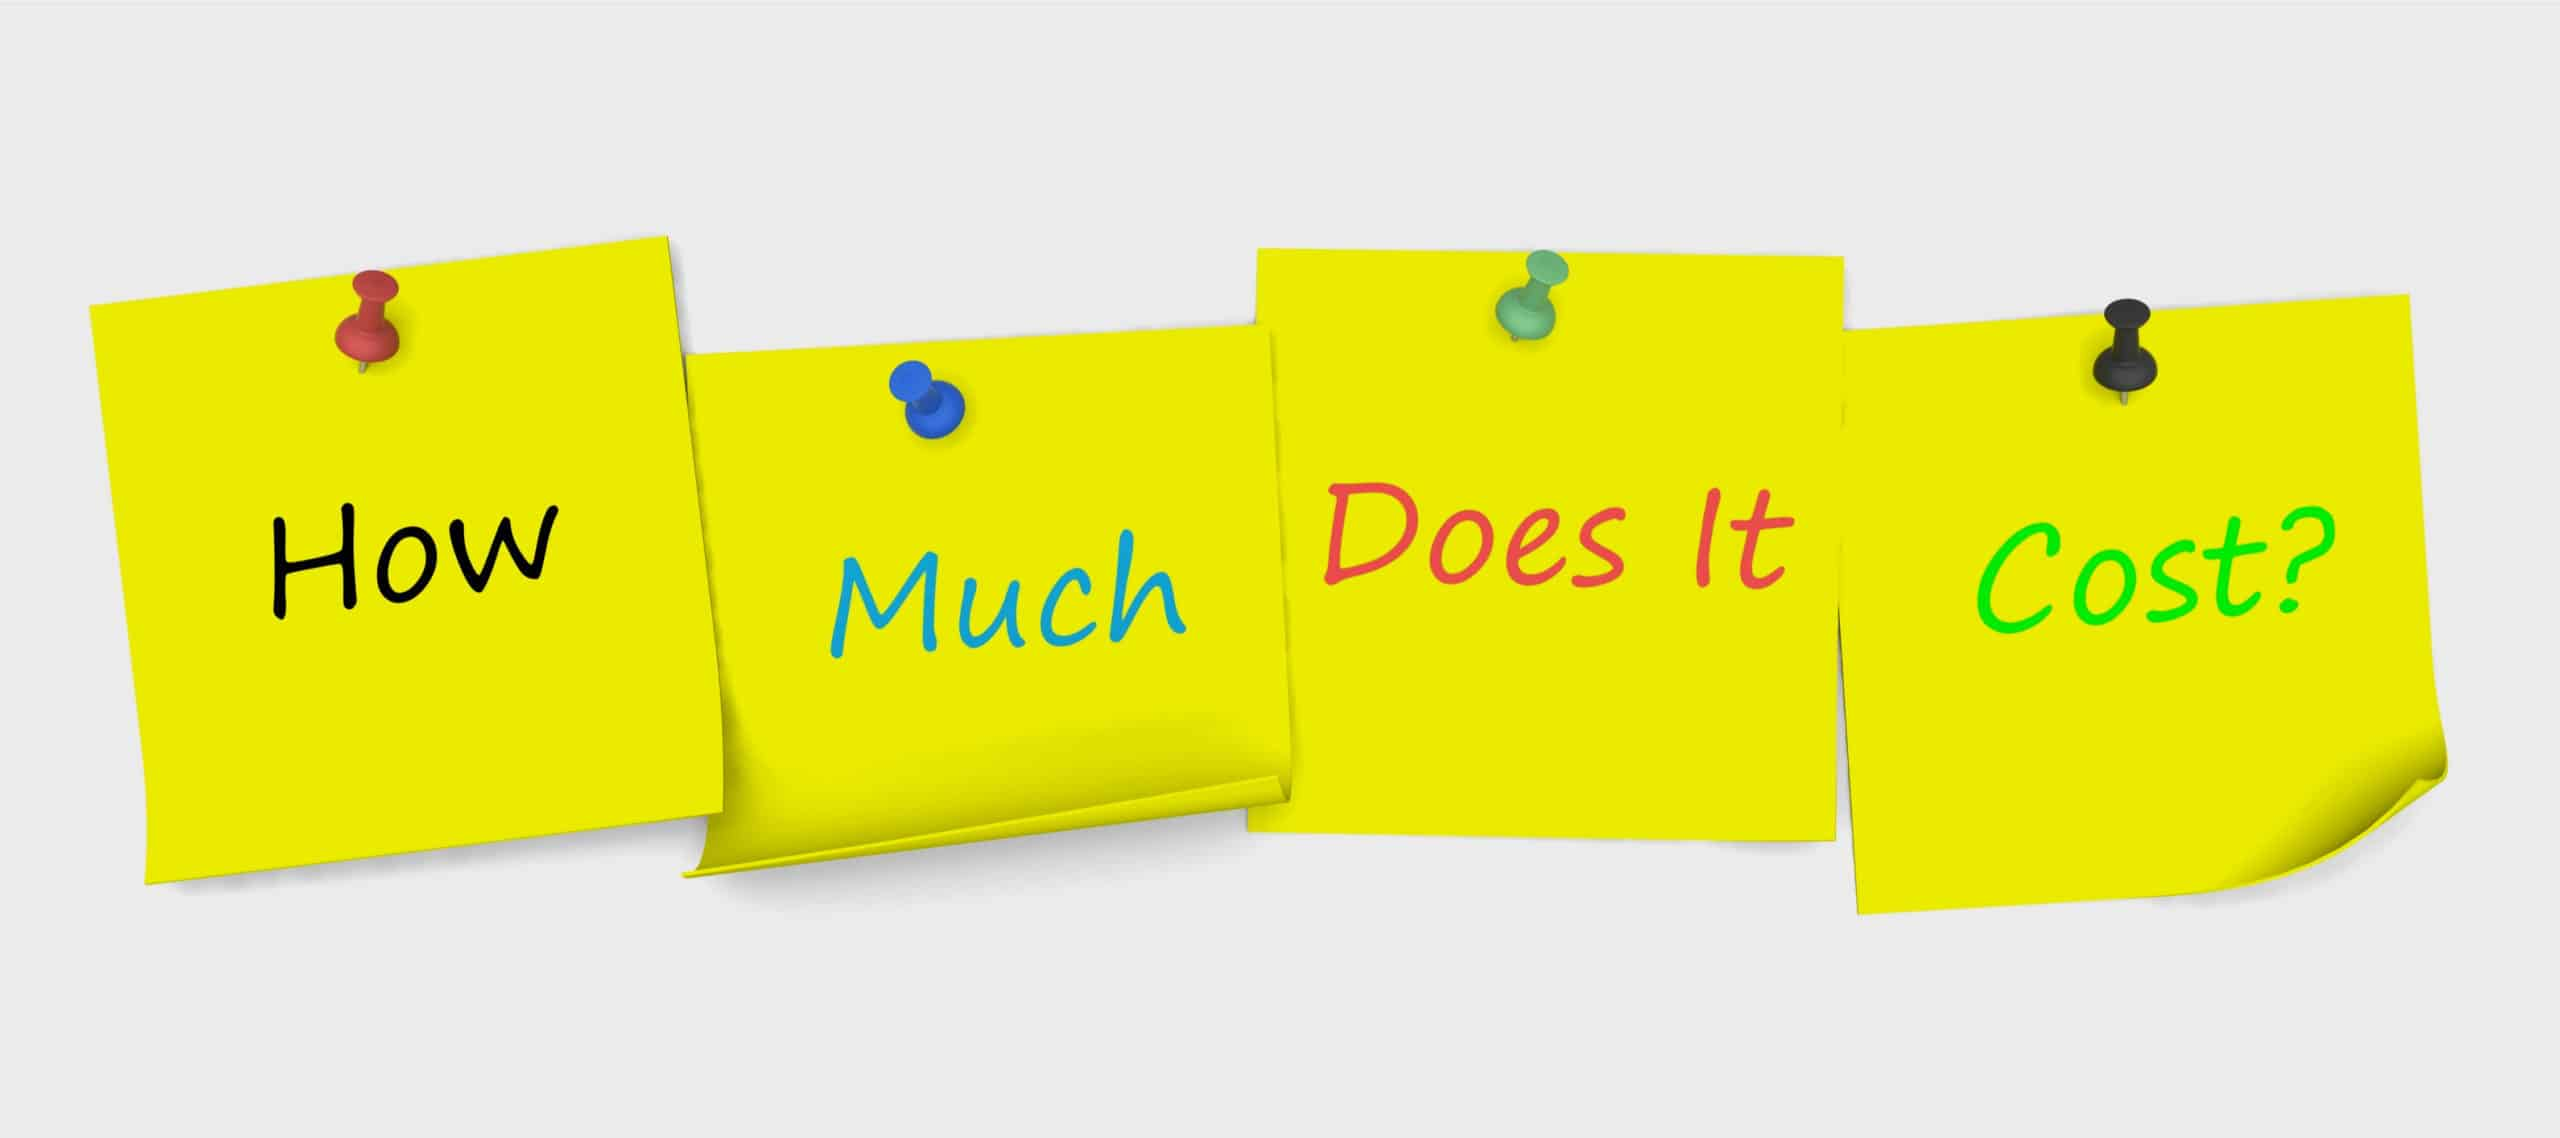 Yellow post-it notes pinned to a board displaying the phrase 'How Much Does It Cost?'